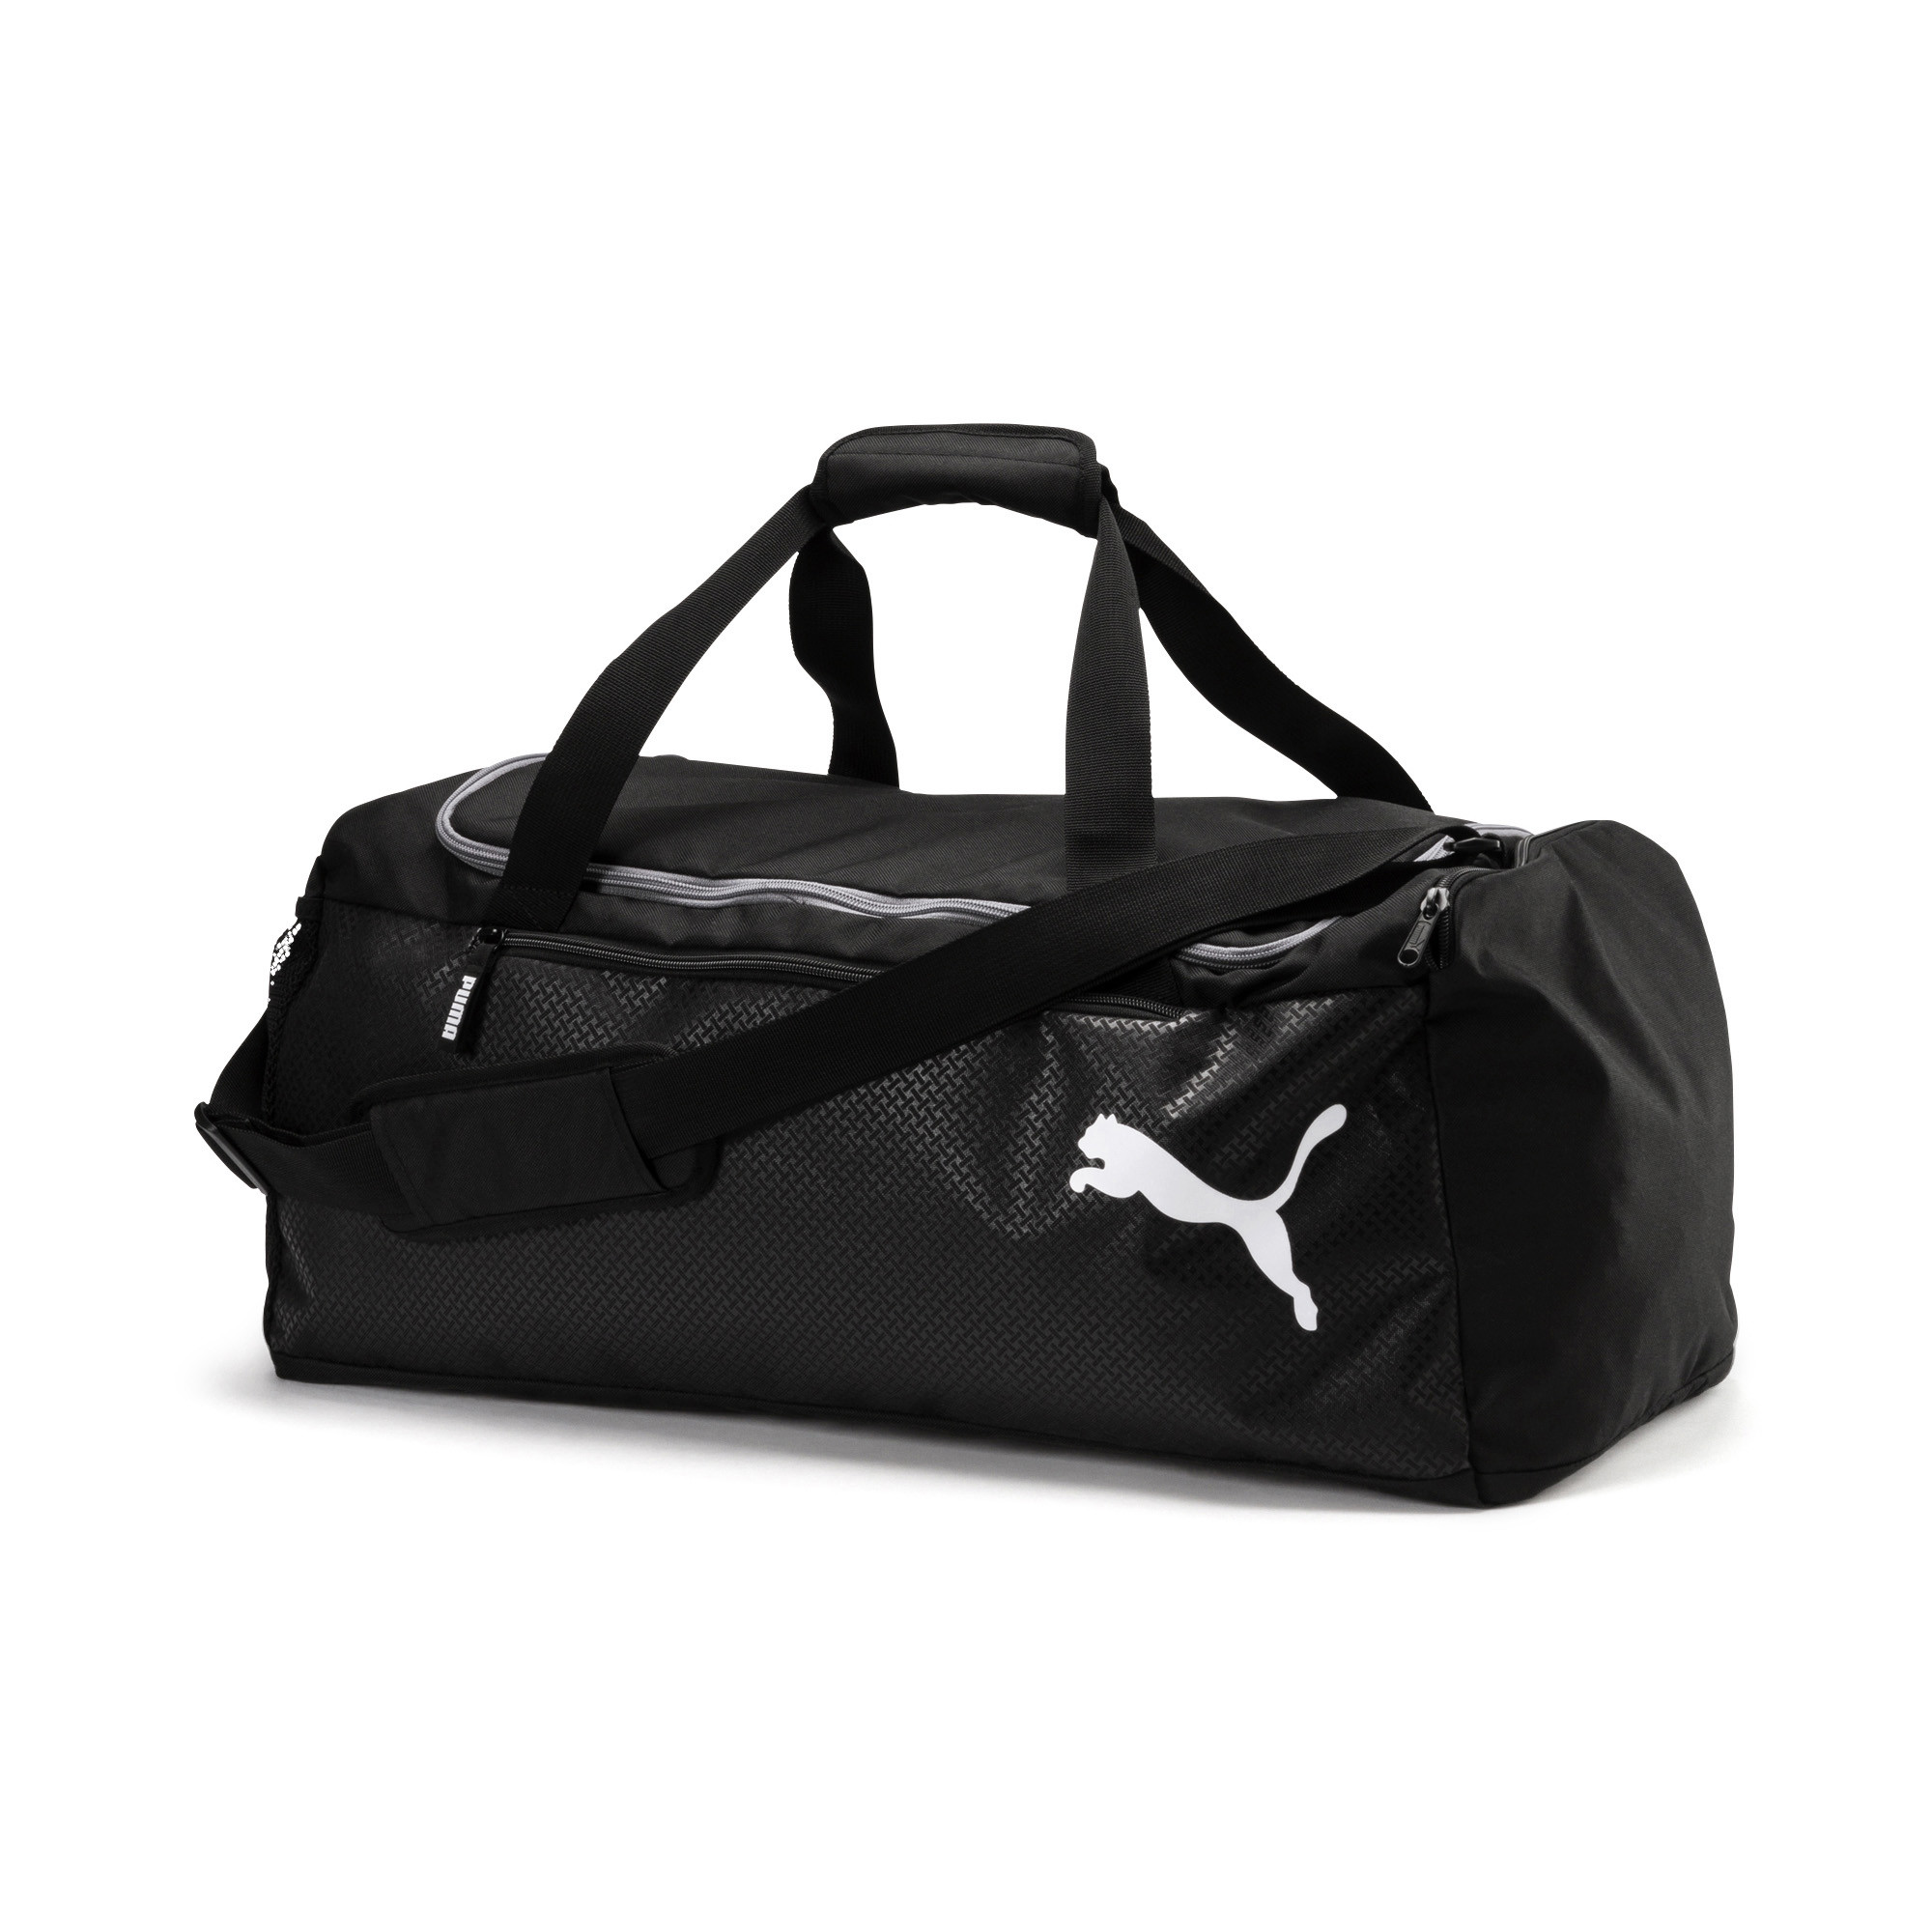 c6d013e2ae Puma Fundamentals Sports Bag M